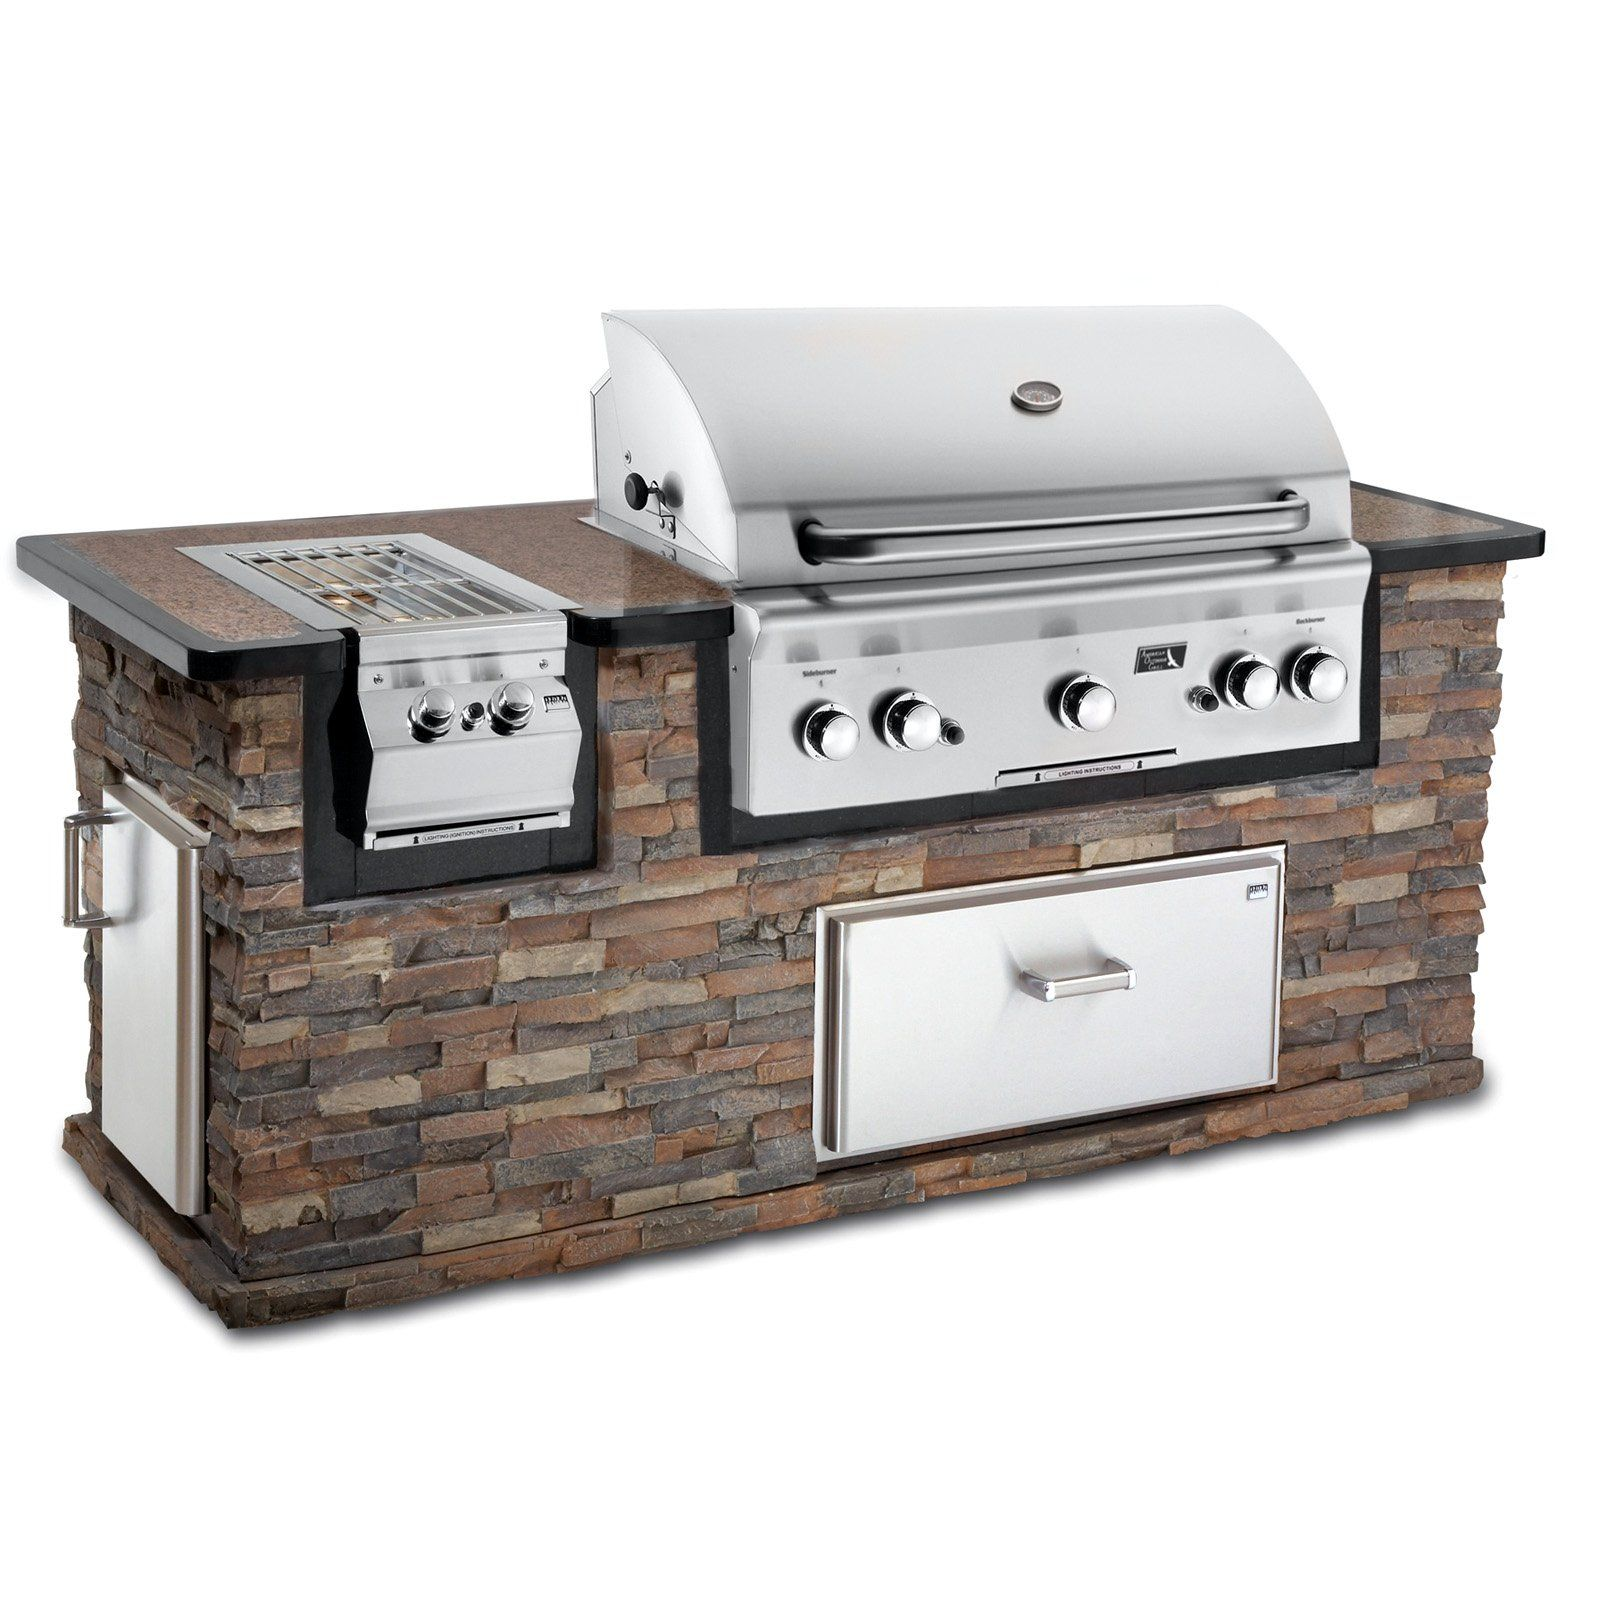 Boy Toys Heck Girl Toys Love American Outdoor Grill 36 Inch Built In Gas Grill 1749 00 Built In Grill Built In Bbq Outdoor Grill